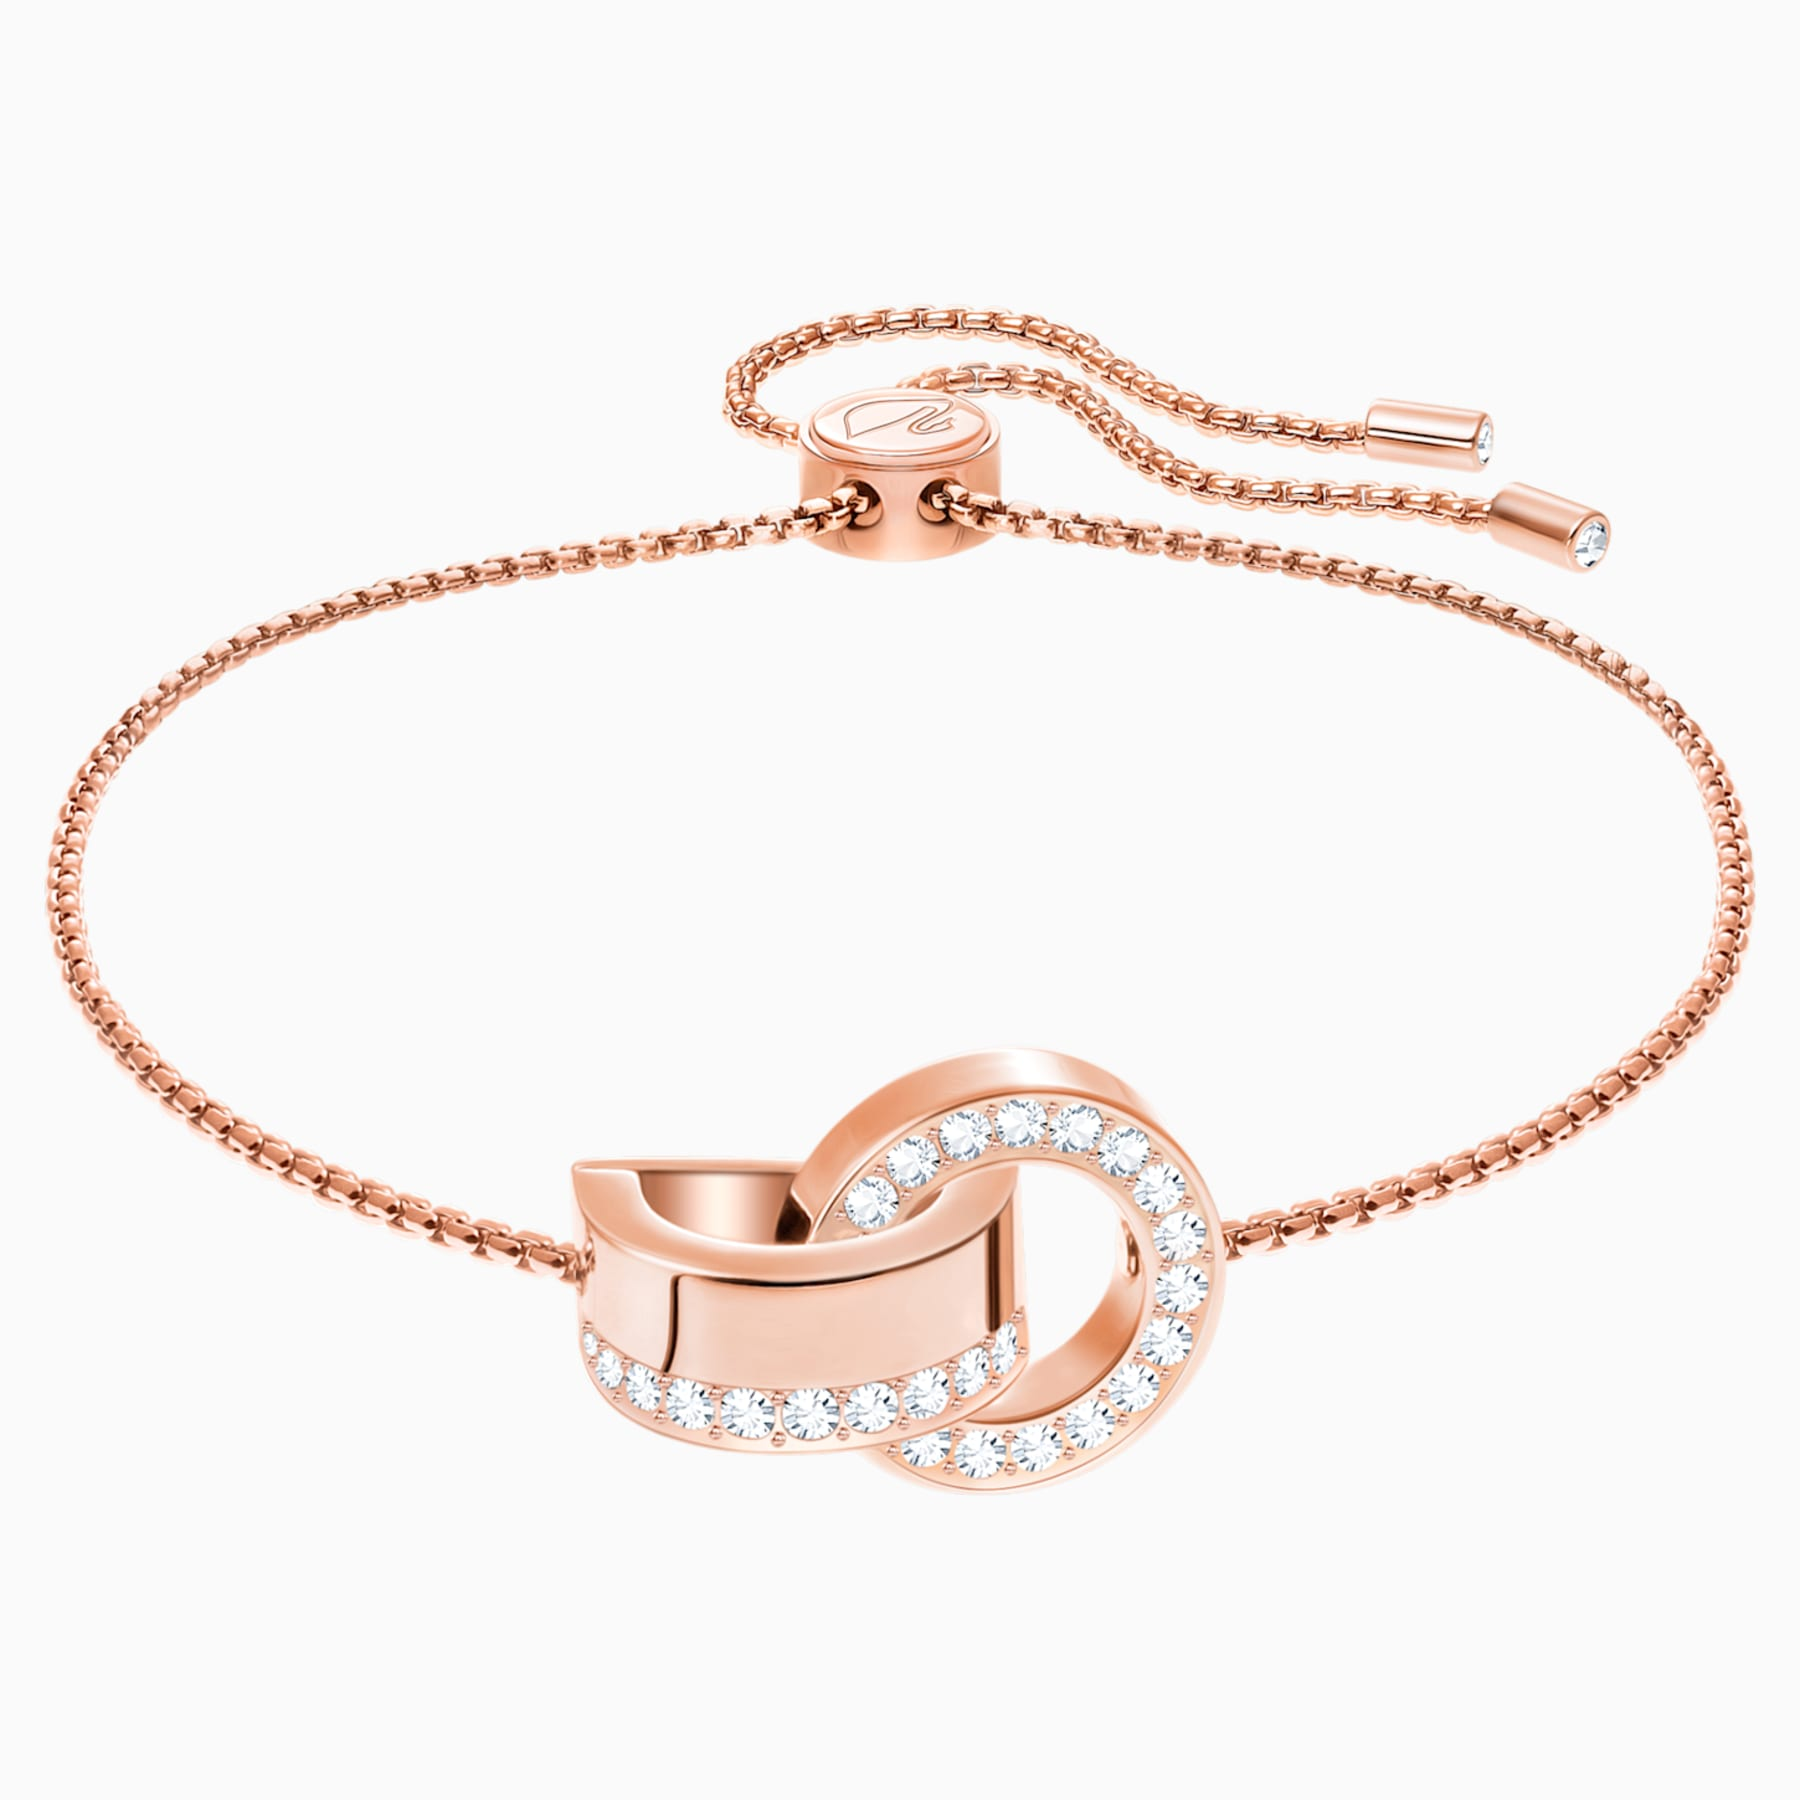 SWAROVSKI, HOLLOW BRACELET, WHITE, ROSE-GOLD TONE PLATED